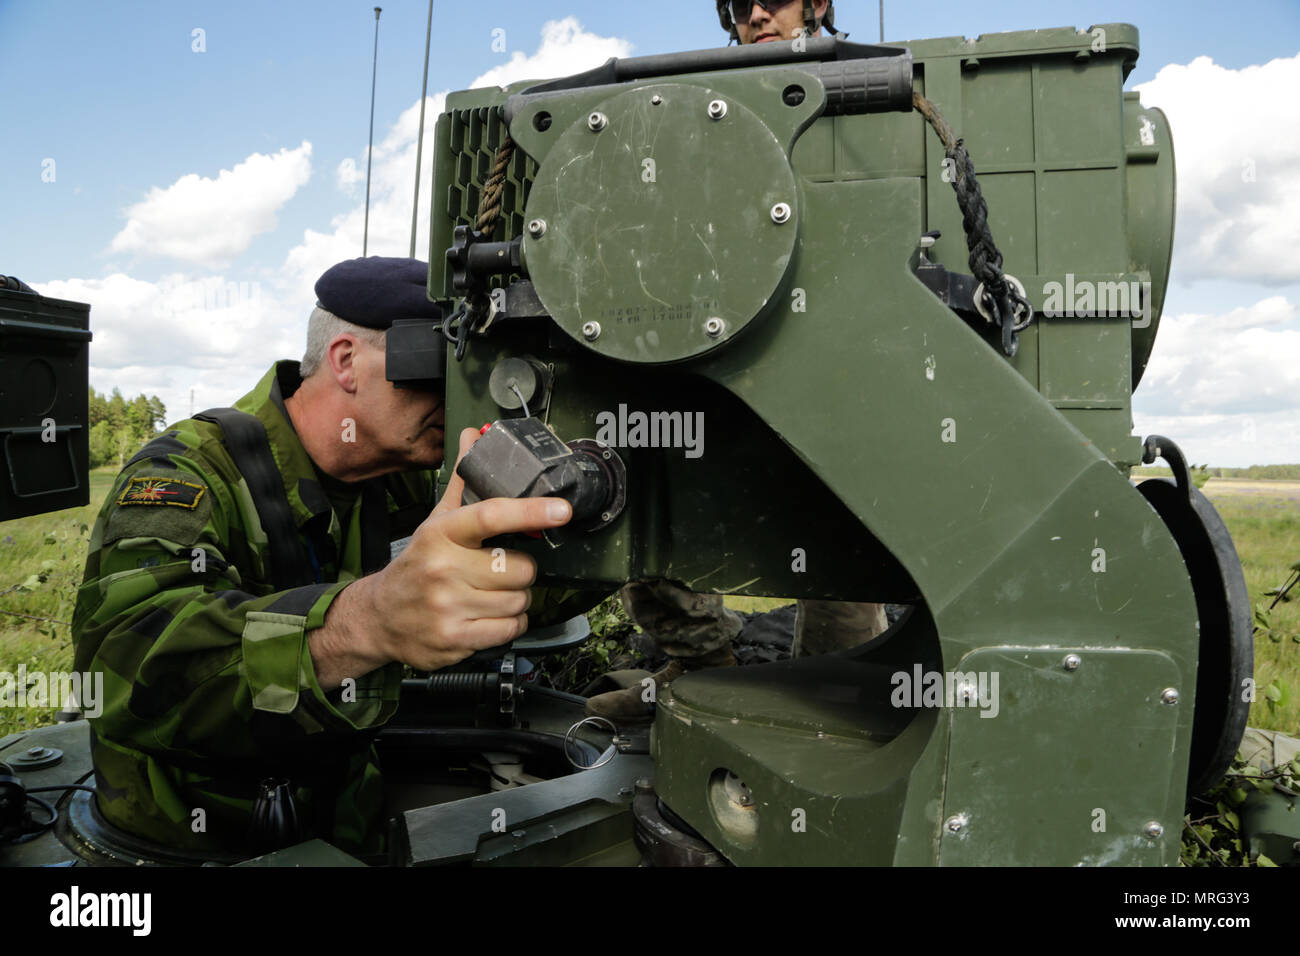 a-swedish-military-observer-tests-out-th